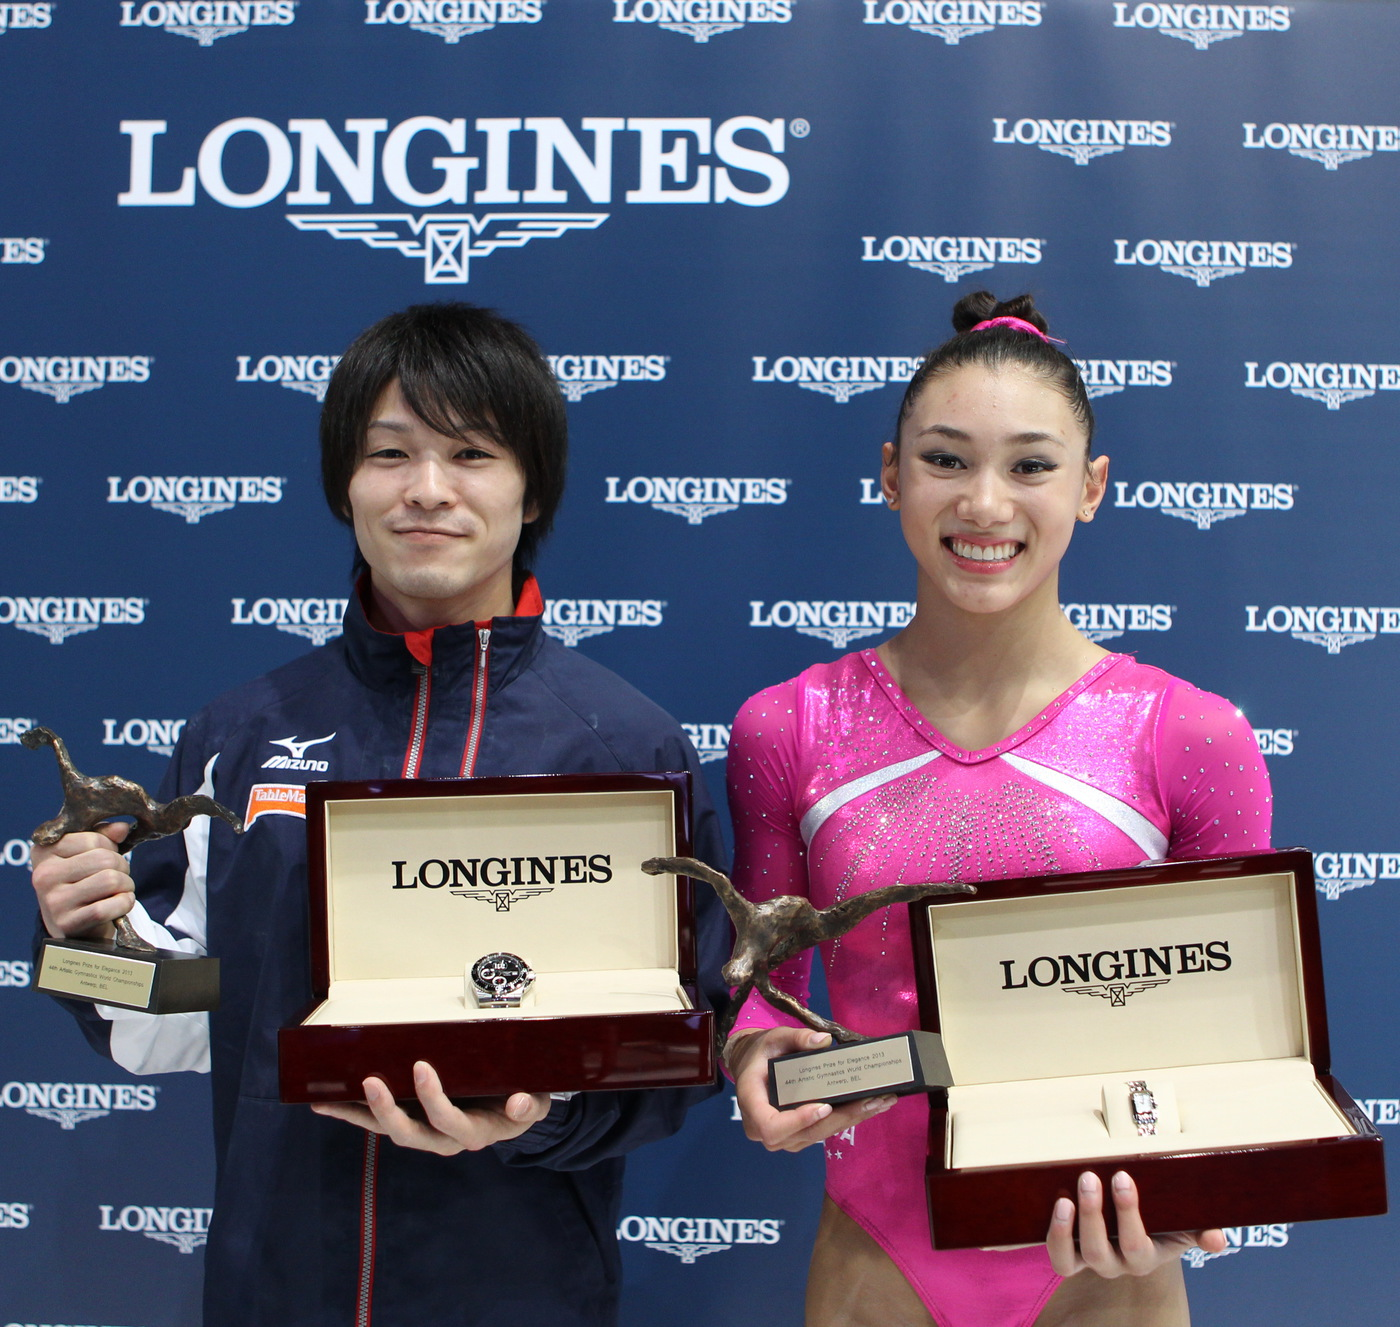 Longines Gymnastics Event: Longines Prize for Elegance awarded to Kyla Ross and Kohei Uchimura at the 44th Artistic Gymnastics World Championships in Antwerp 2